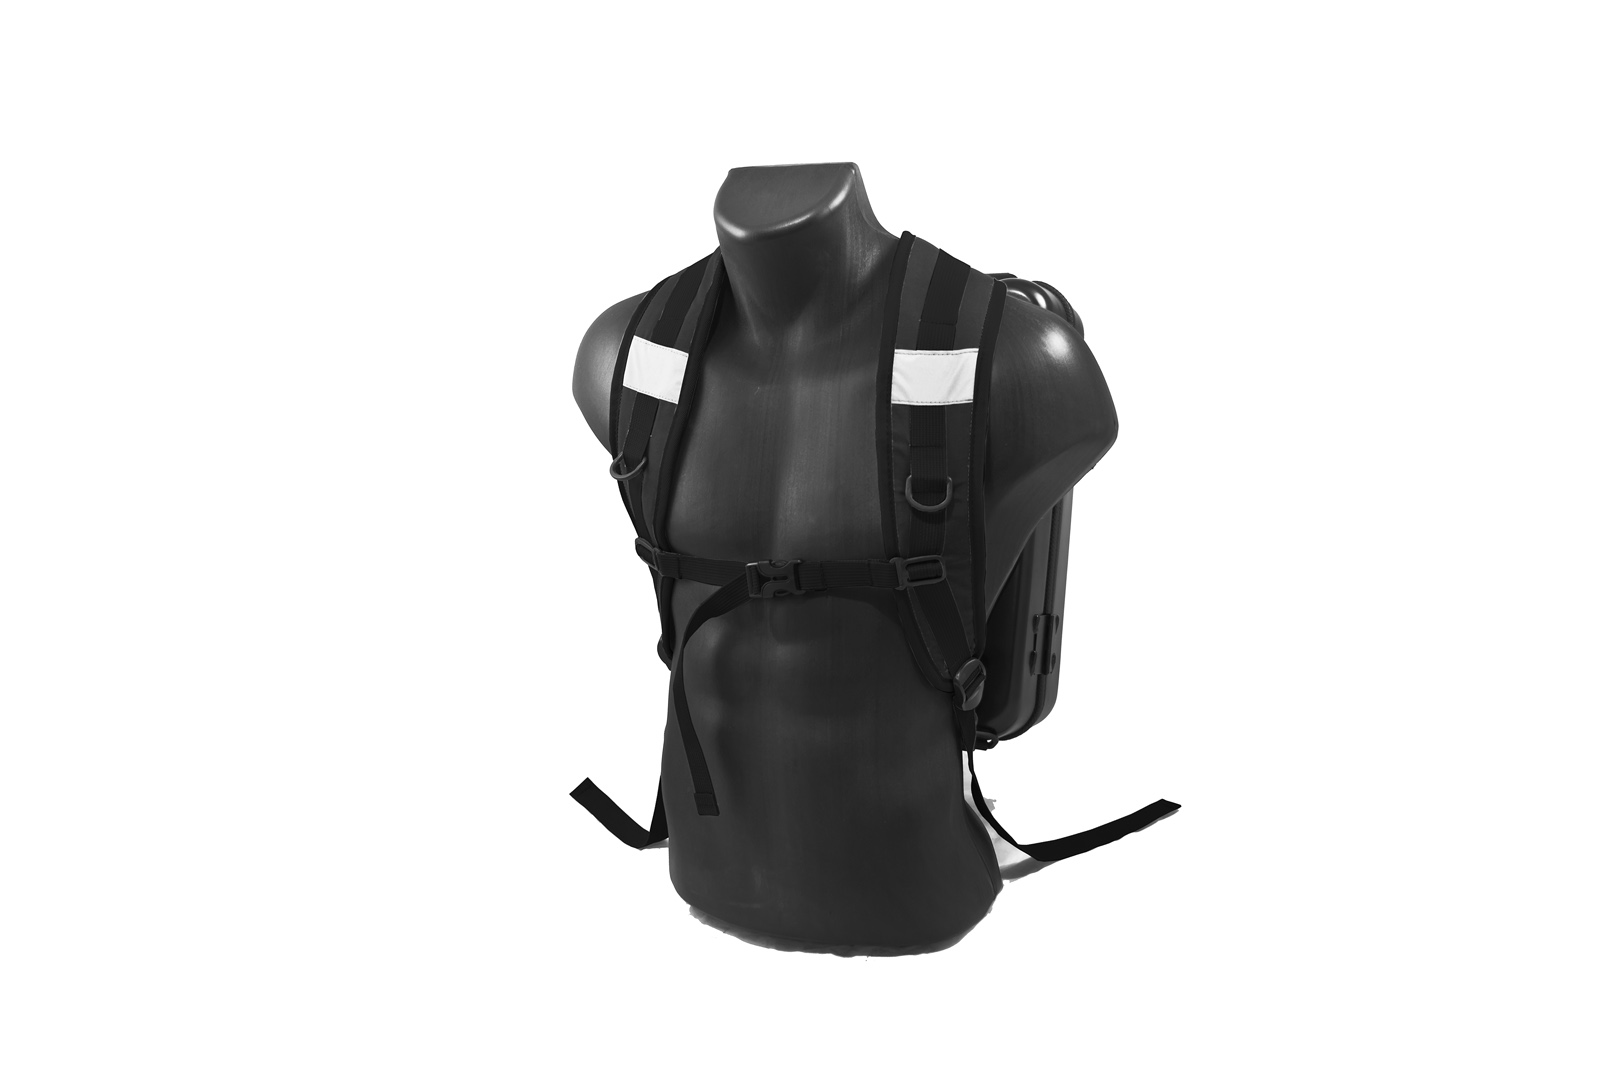 g-case-backpack-jerrycan-style-matte-black-4